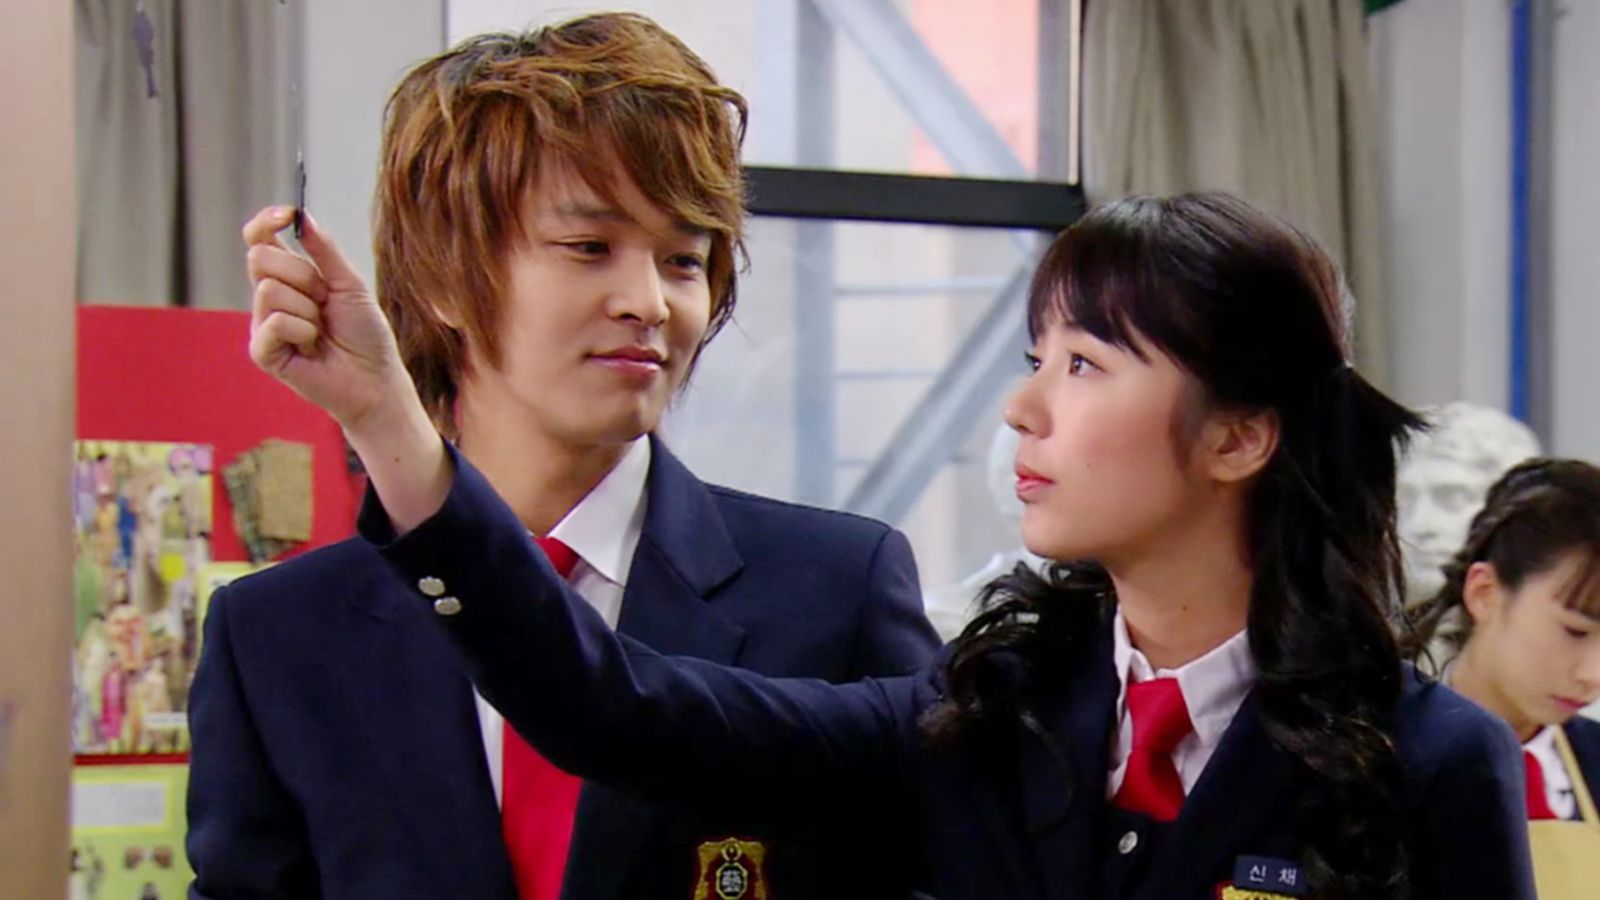 sinopsis princess hours episode 8 kadorama